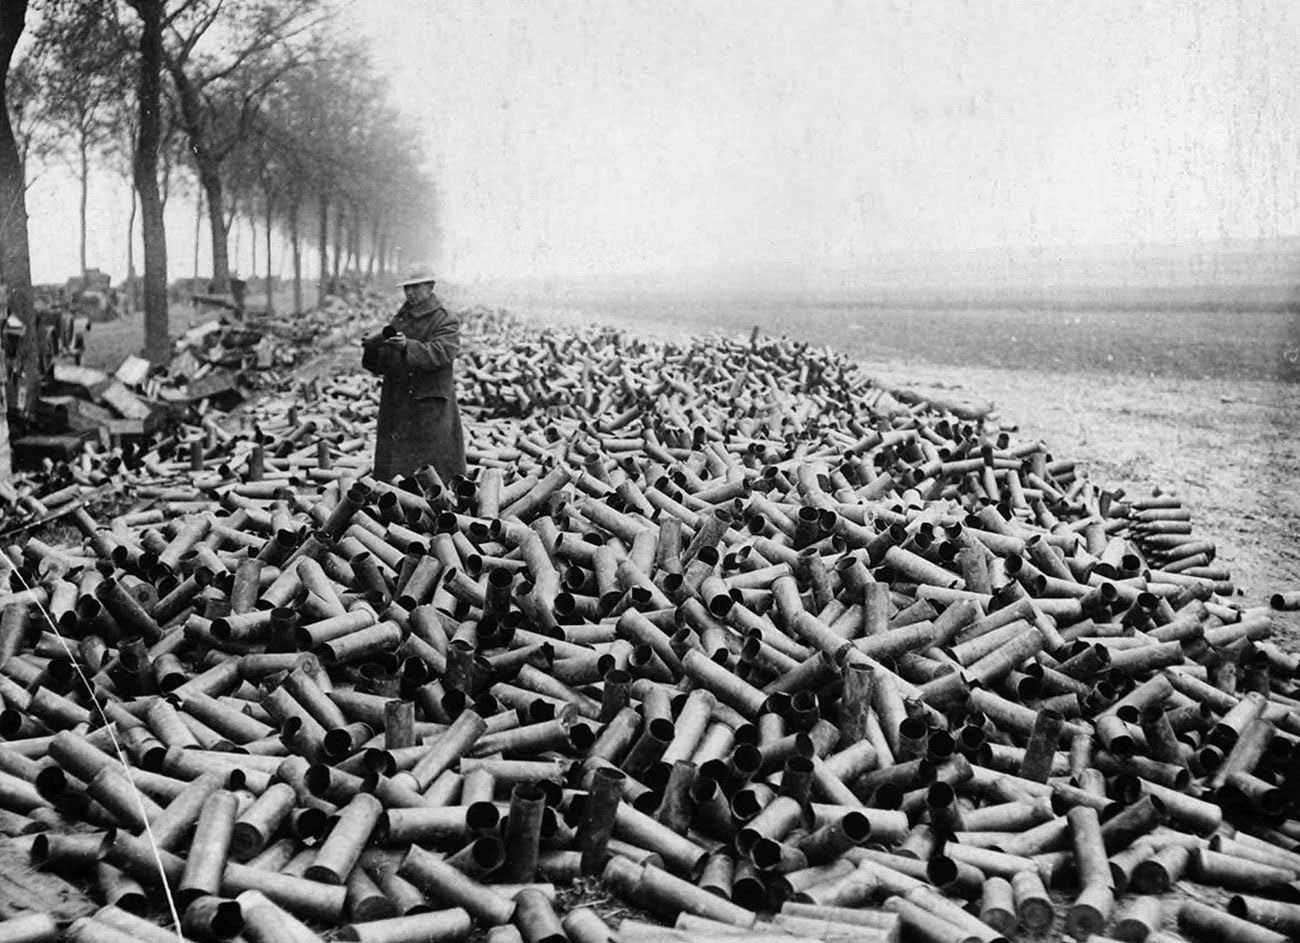 This picture shows a pile of 105 mm shells spent during the course of a single day.